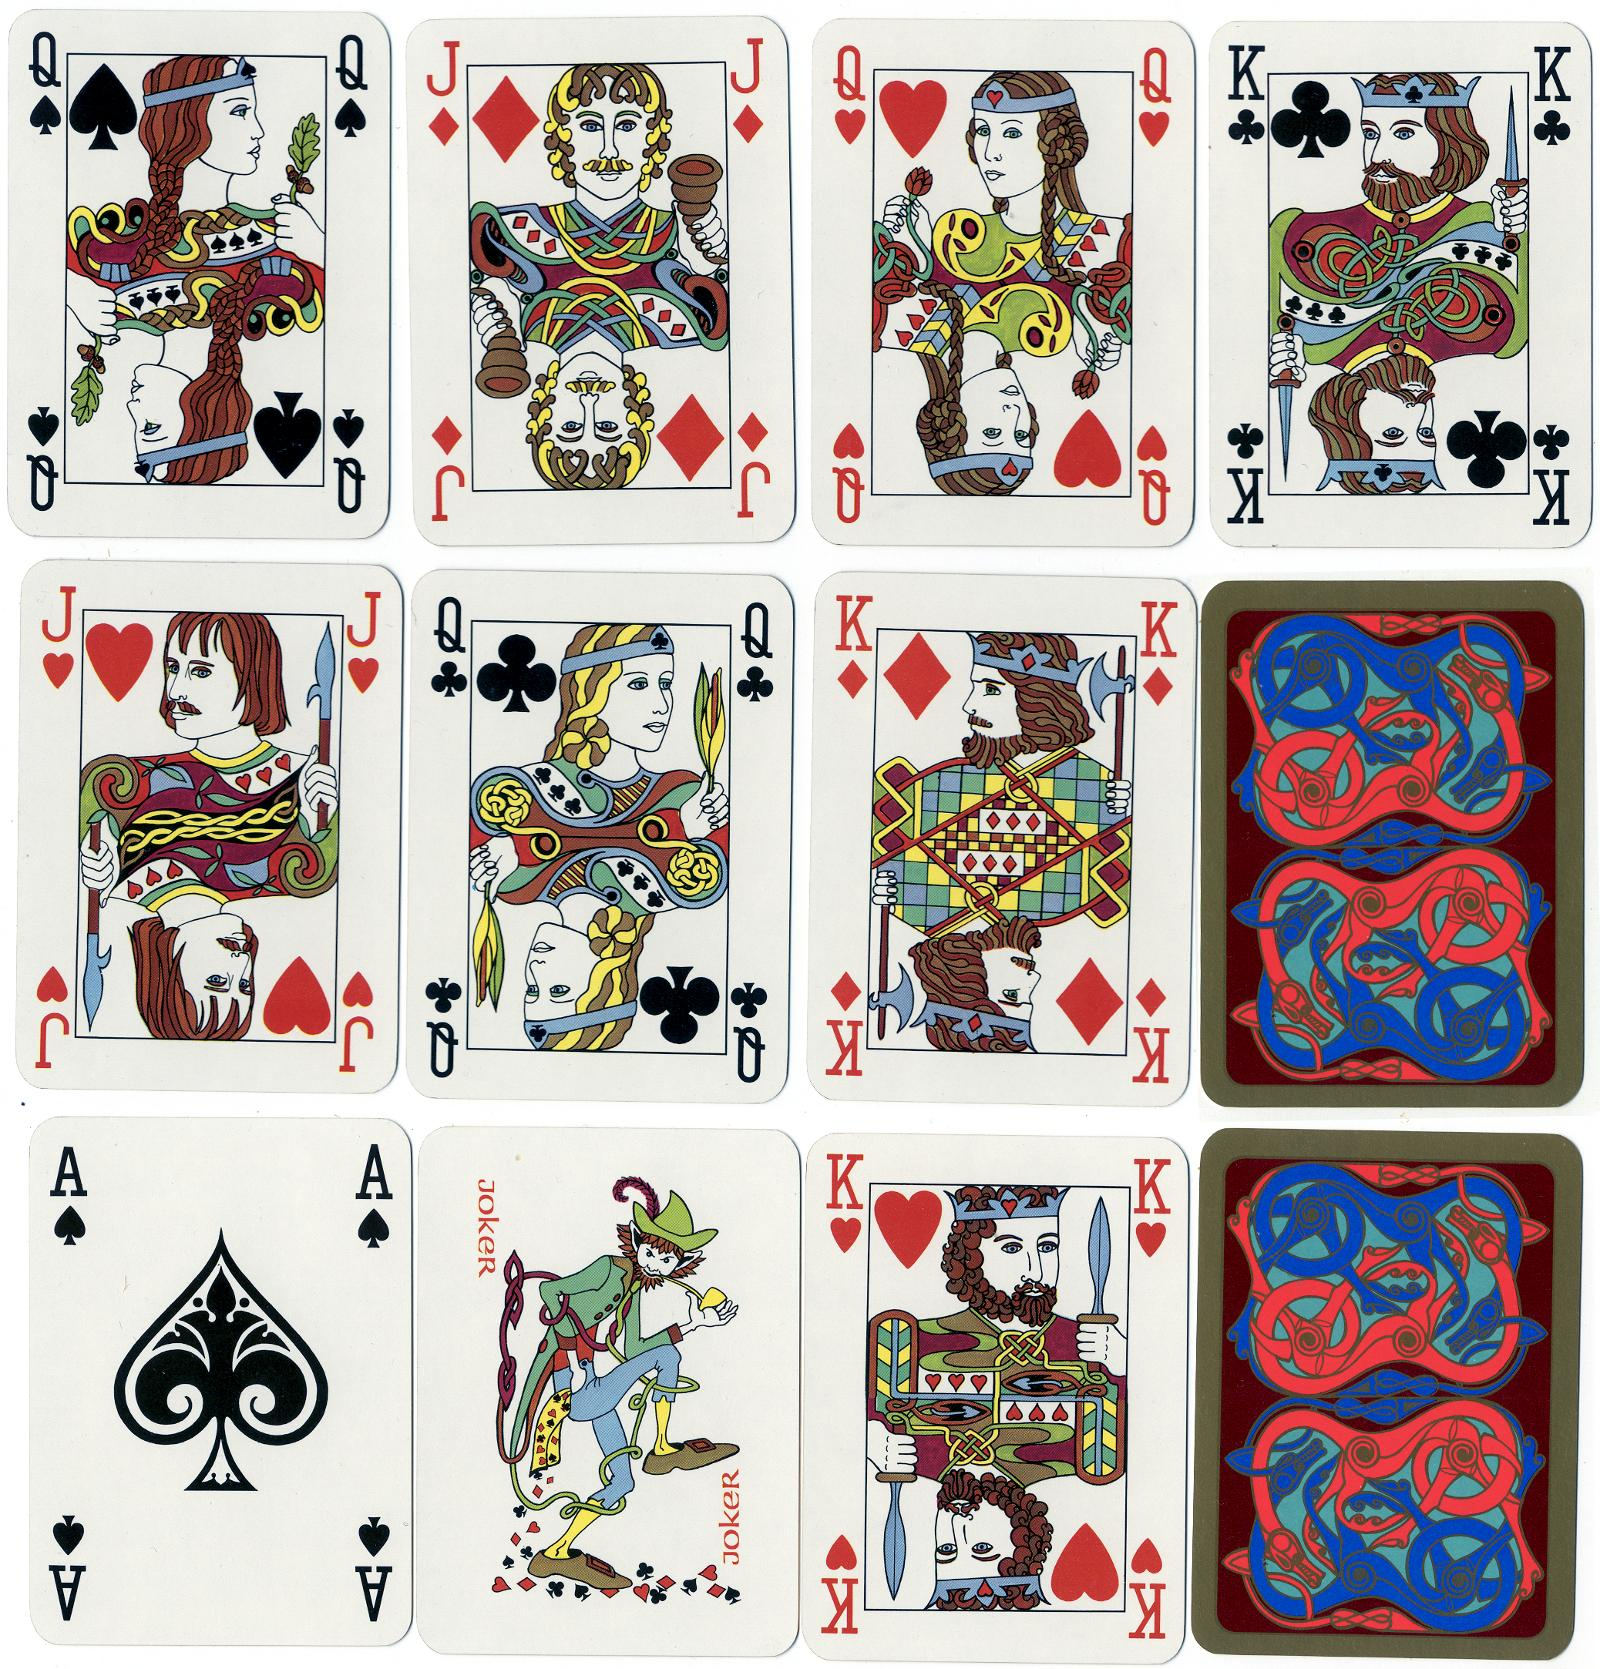 Playing card designs based on motifs from early Irish manuscripts and metalwork. Created and designed by Philip Murphy and Catherine Treacy